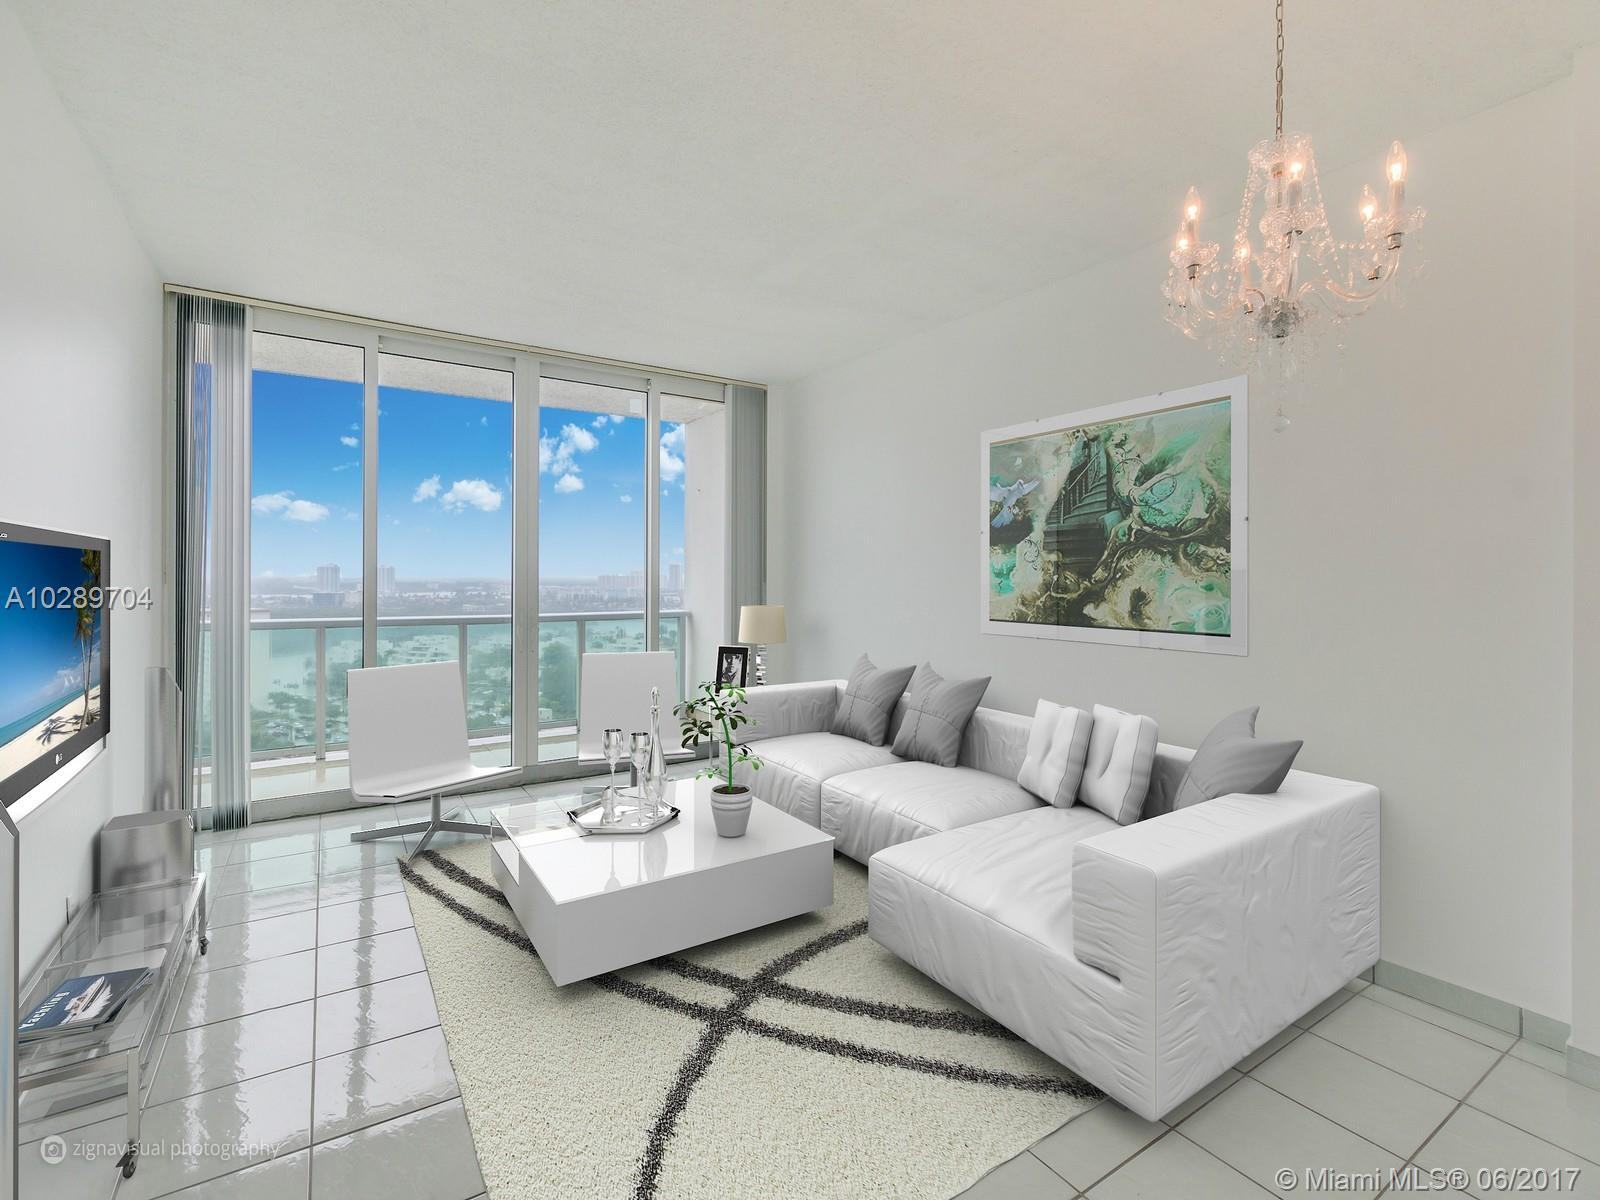 100 Bayview Dr, PH02 - Sunny Isles Beach, Florida